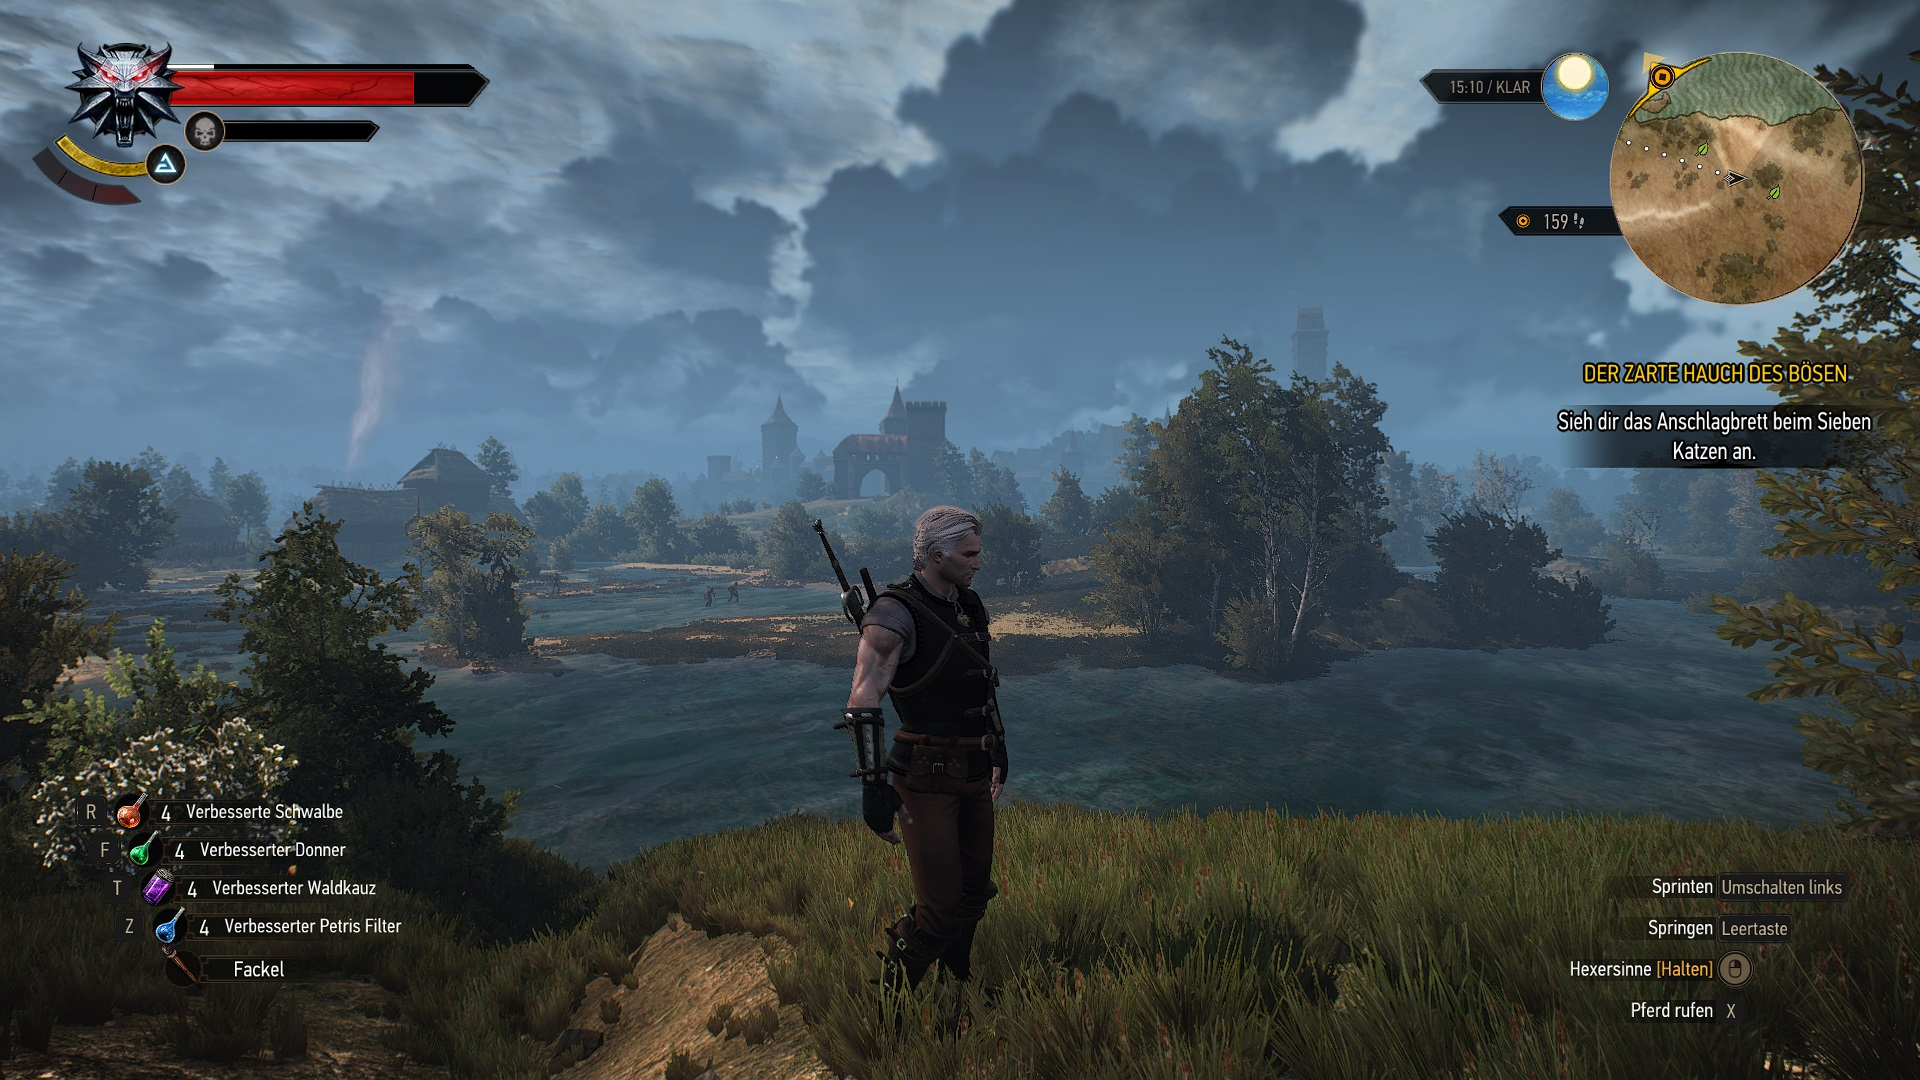 The Witcher 3 14.10.2020 11_45_52.jpg